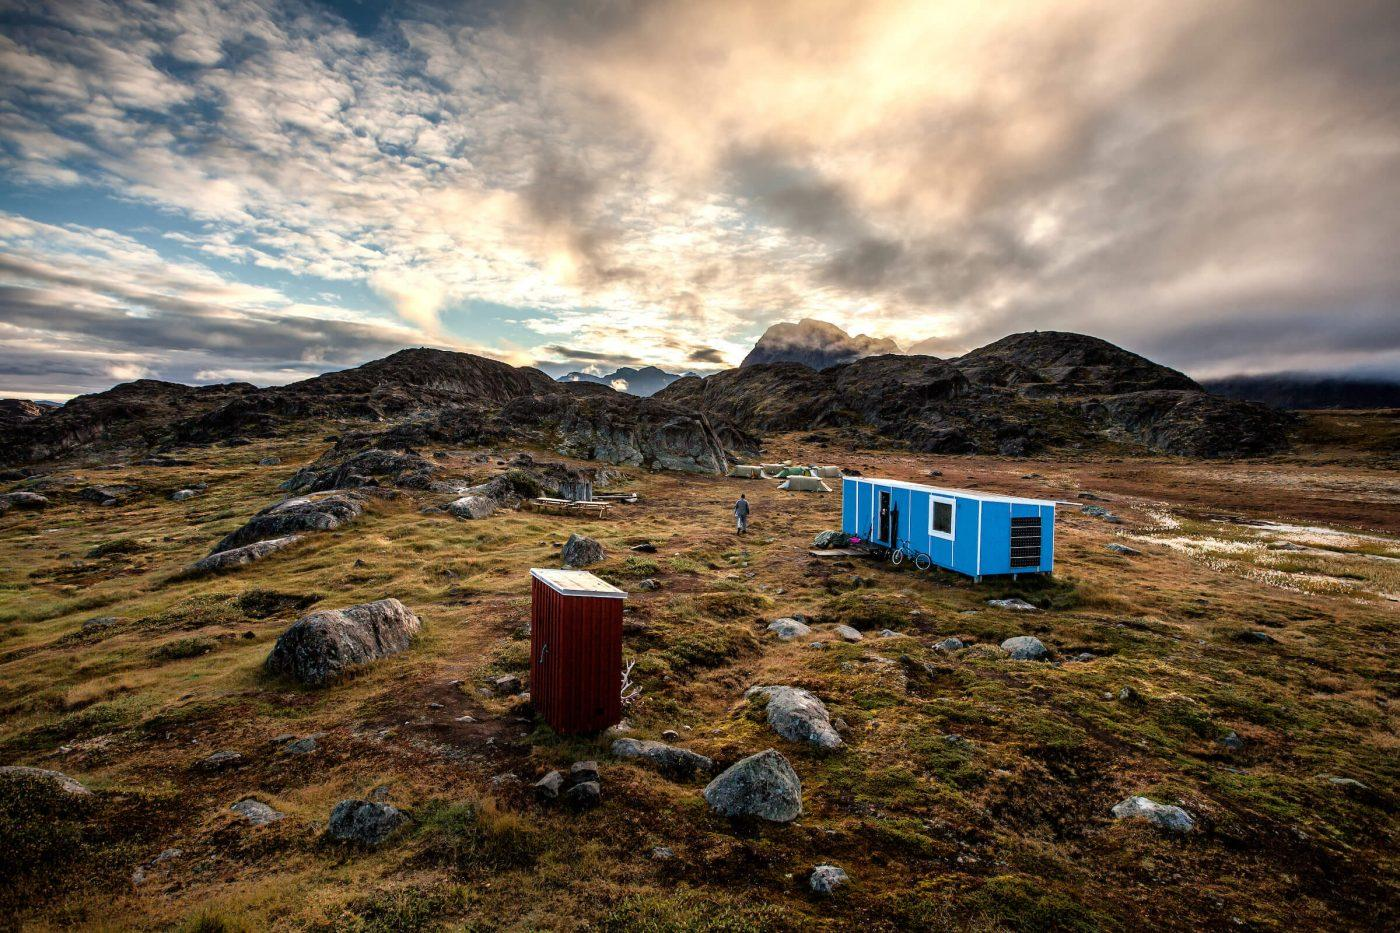 The fly fishing camp at Erfalik river in Greenland. By Mads Pihl